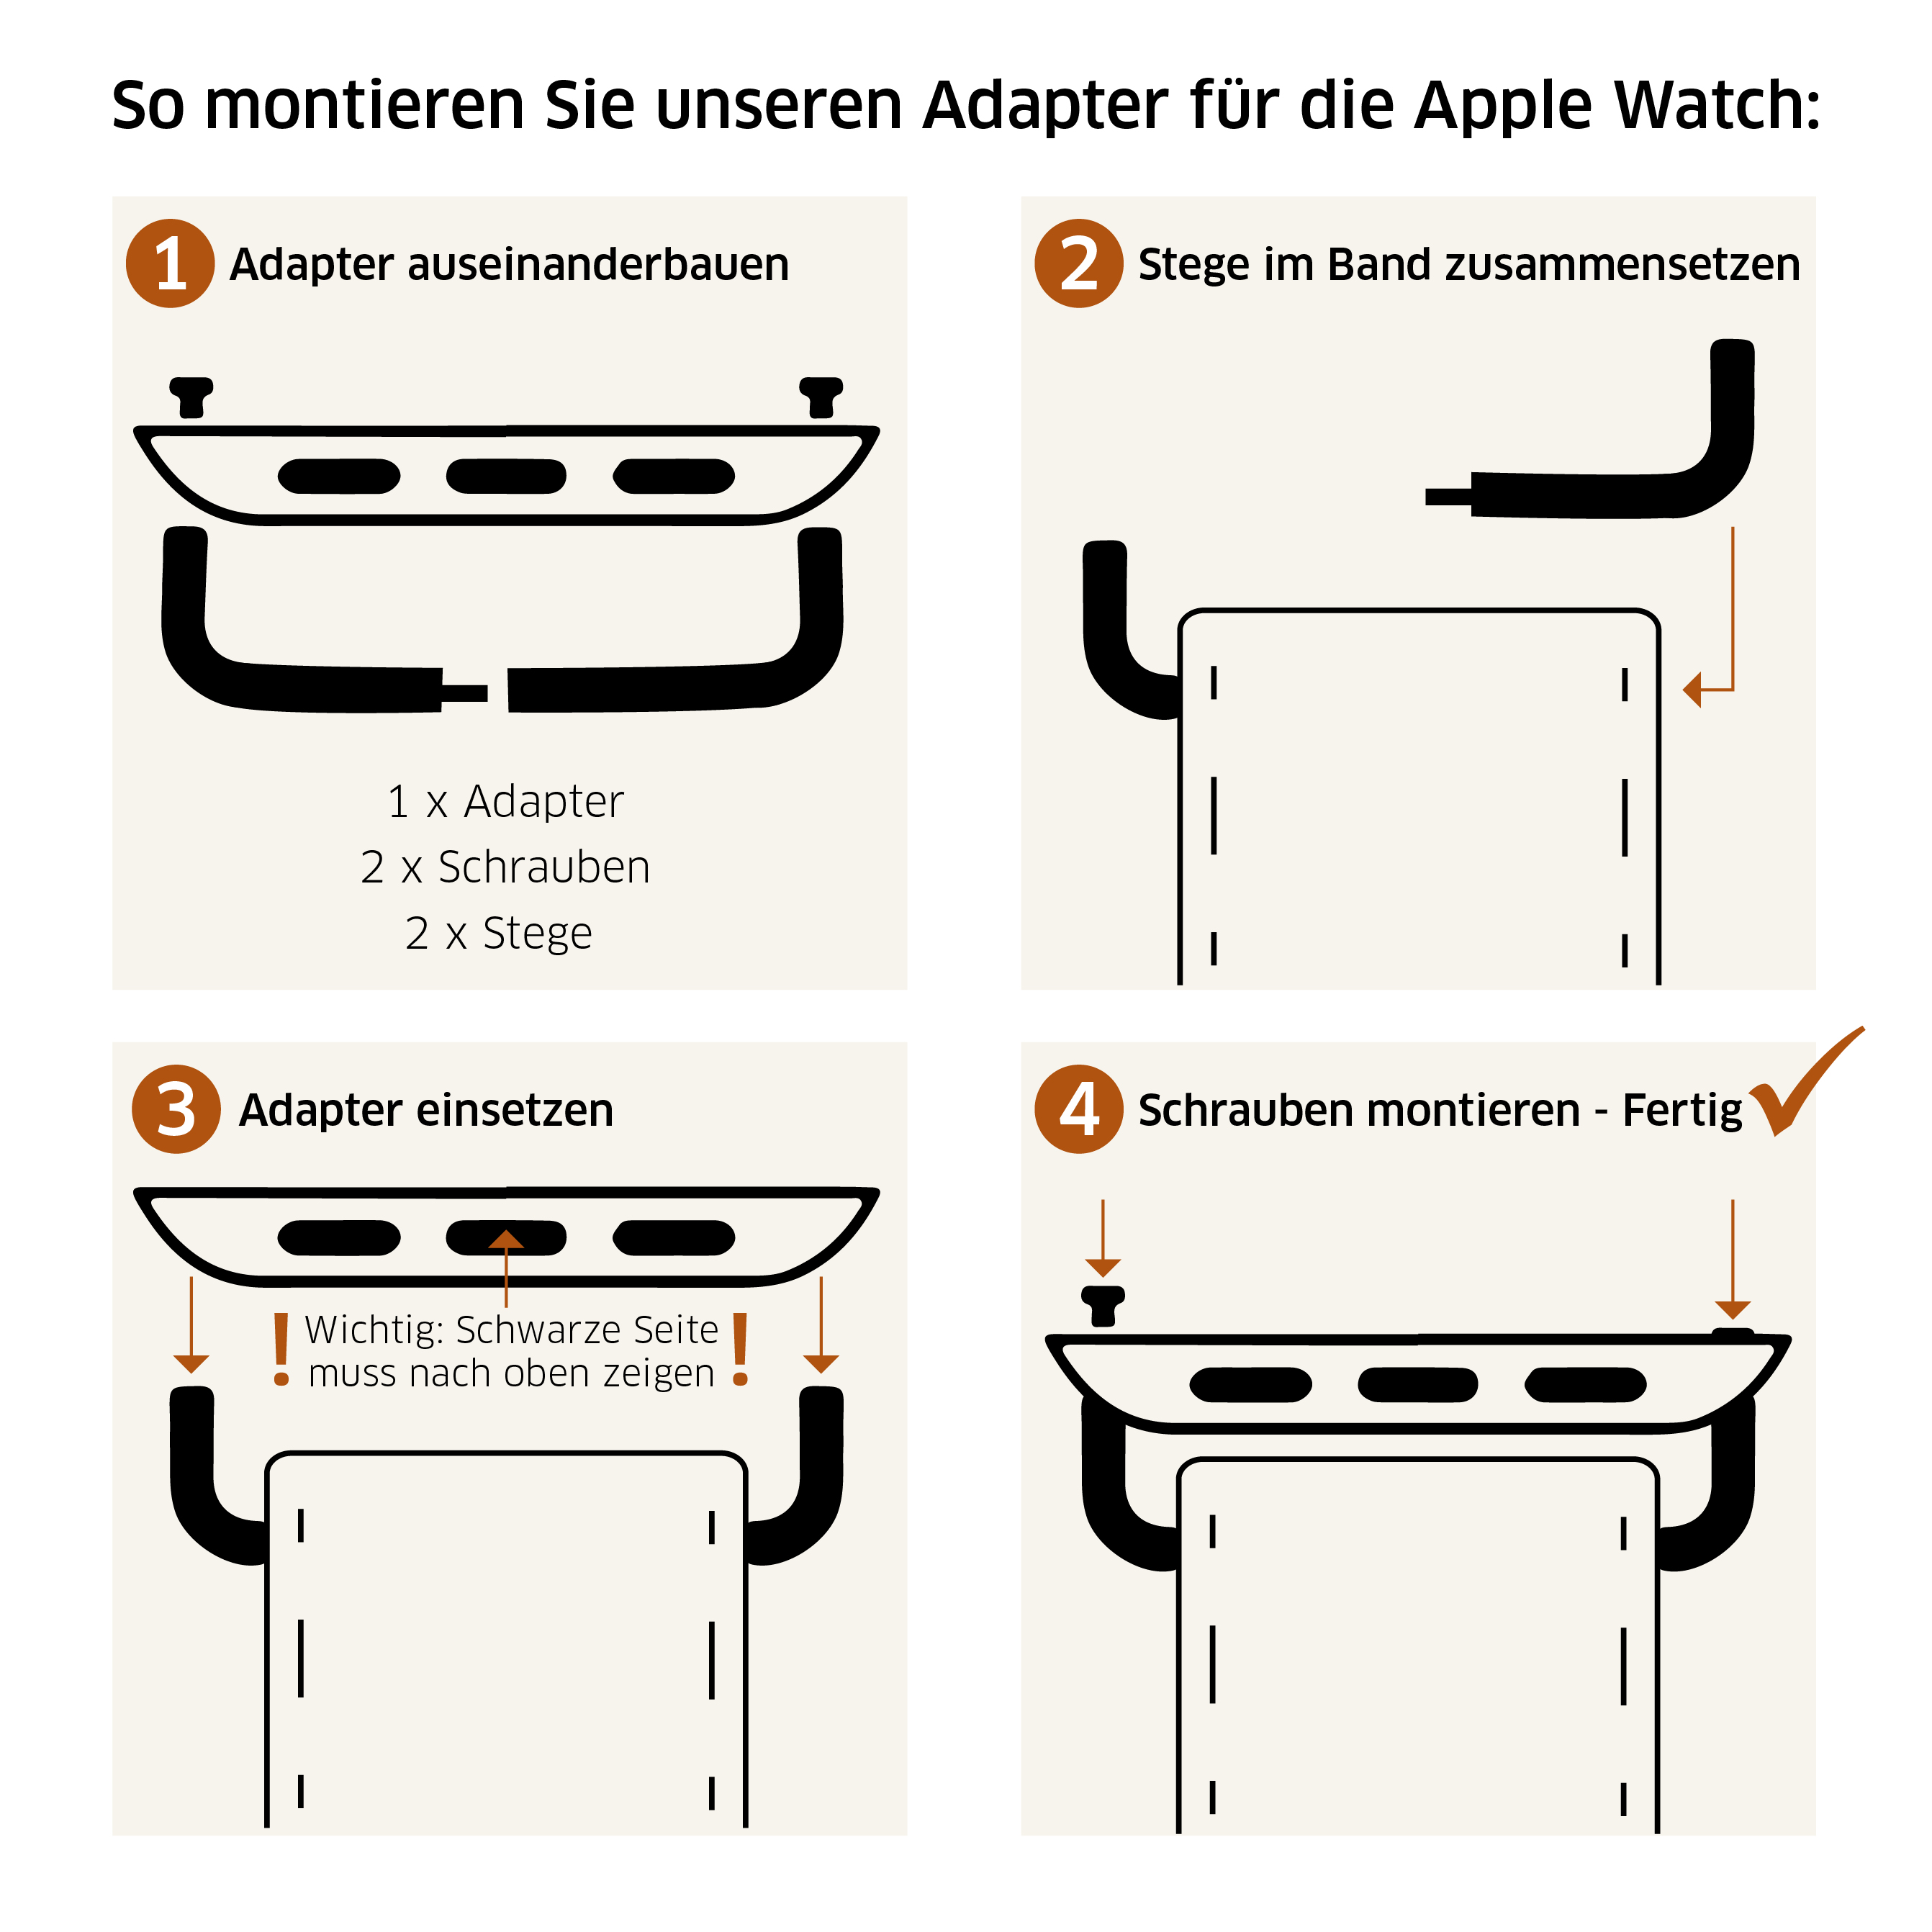 Apple_Adapter_montieren